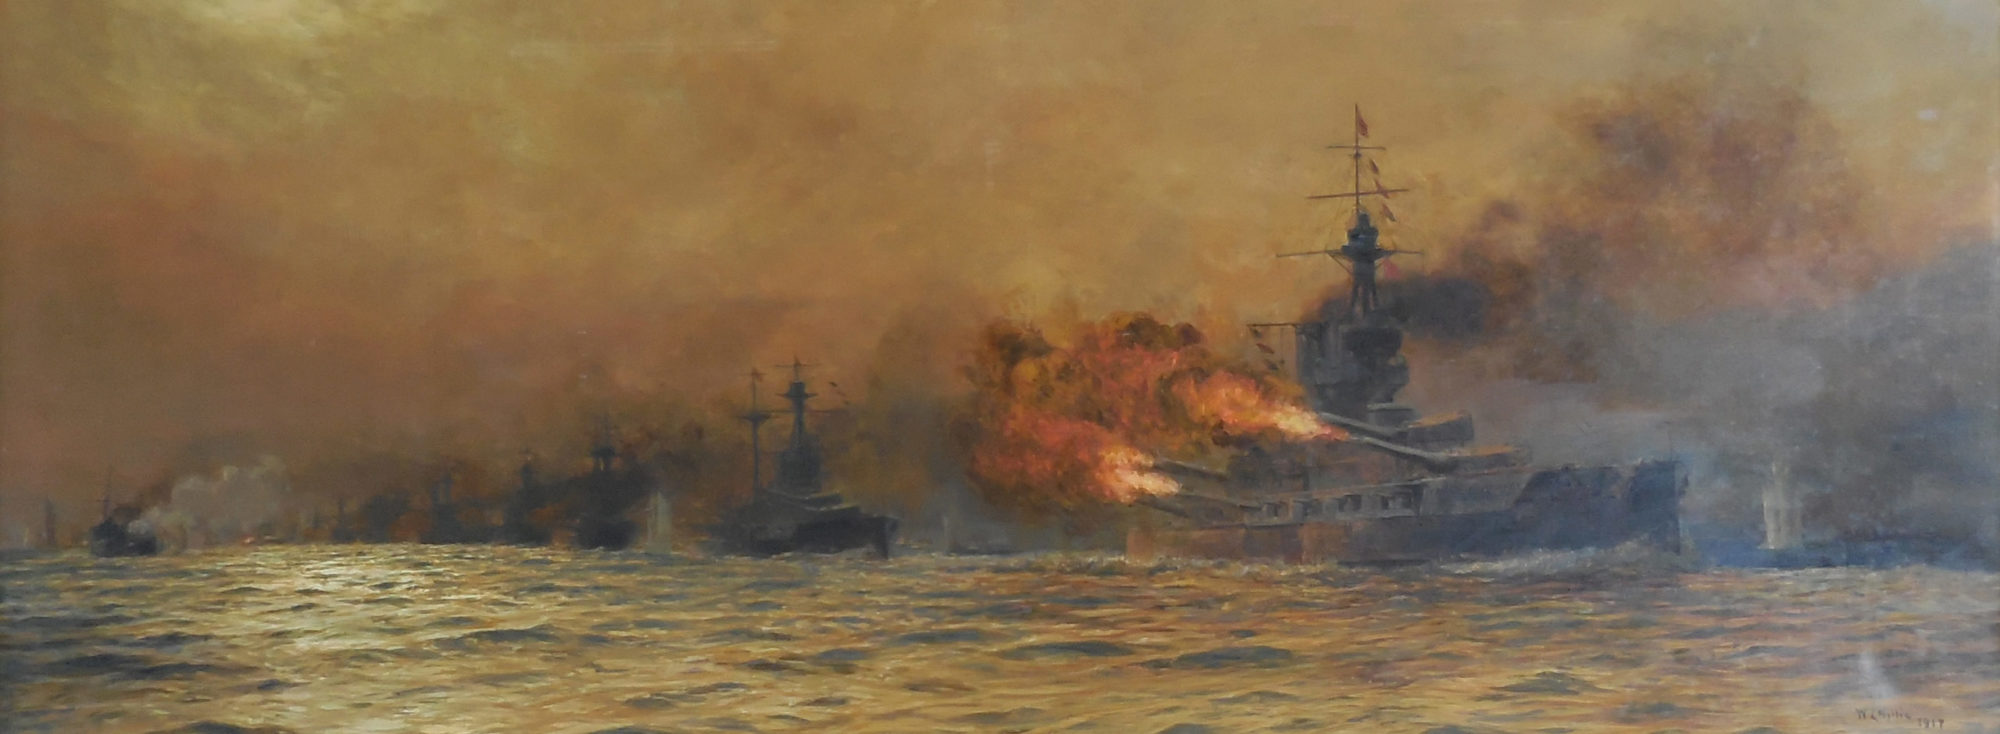 Painting of the Jutland with fire and explosions at sea